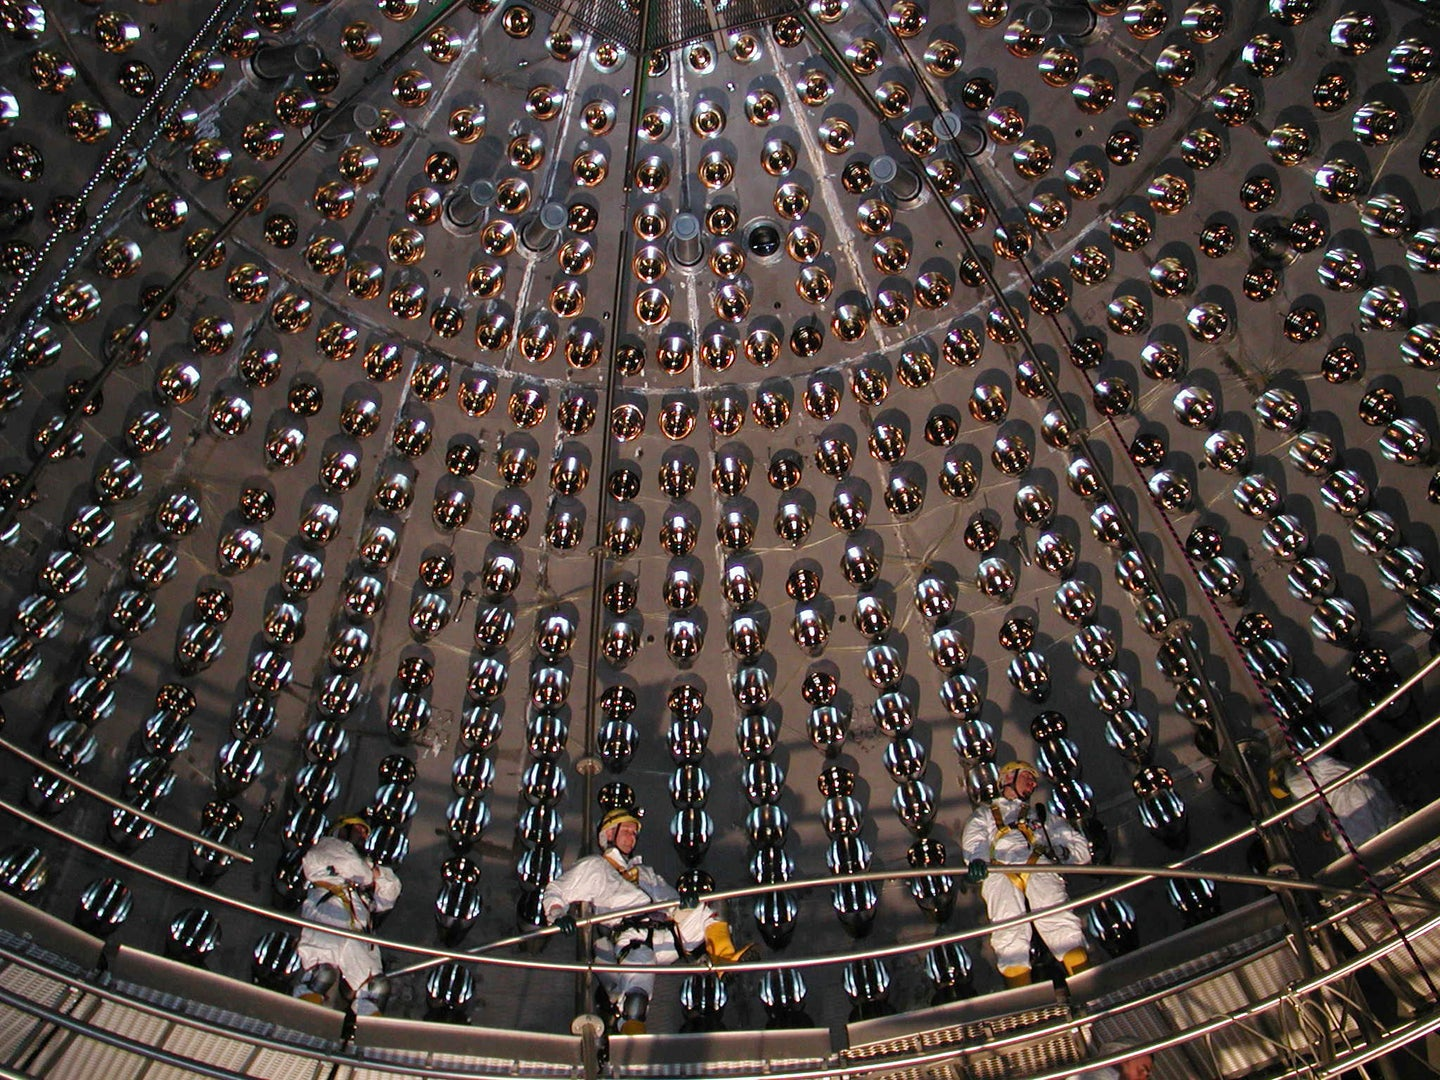 Scientists Spot Subatomic Particles Underground: Geoneutrinos May Help Drive Earth's Internal Heat